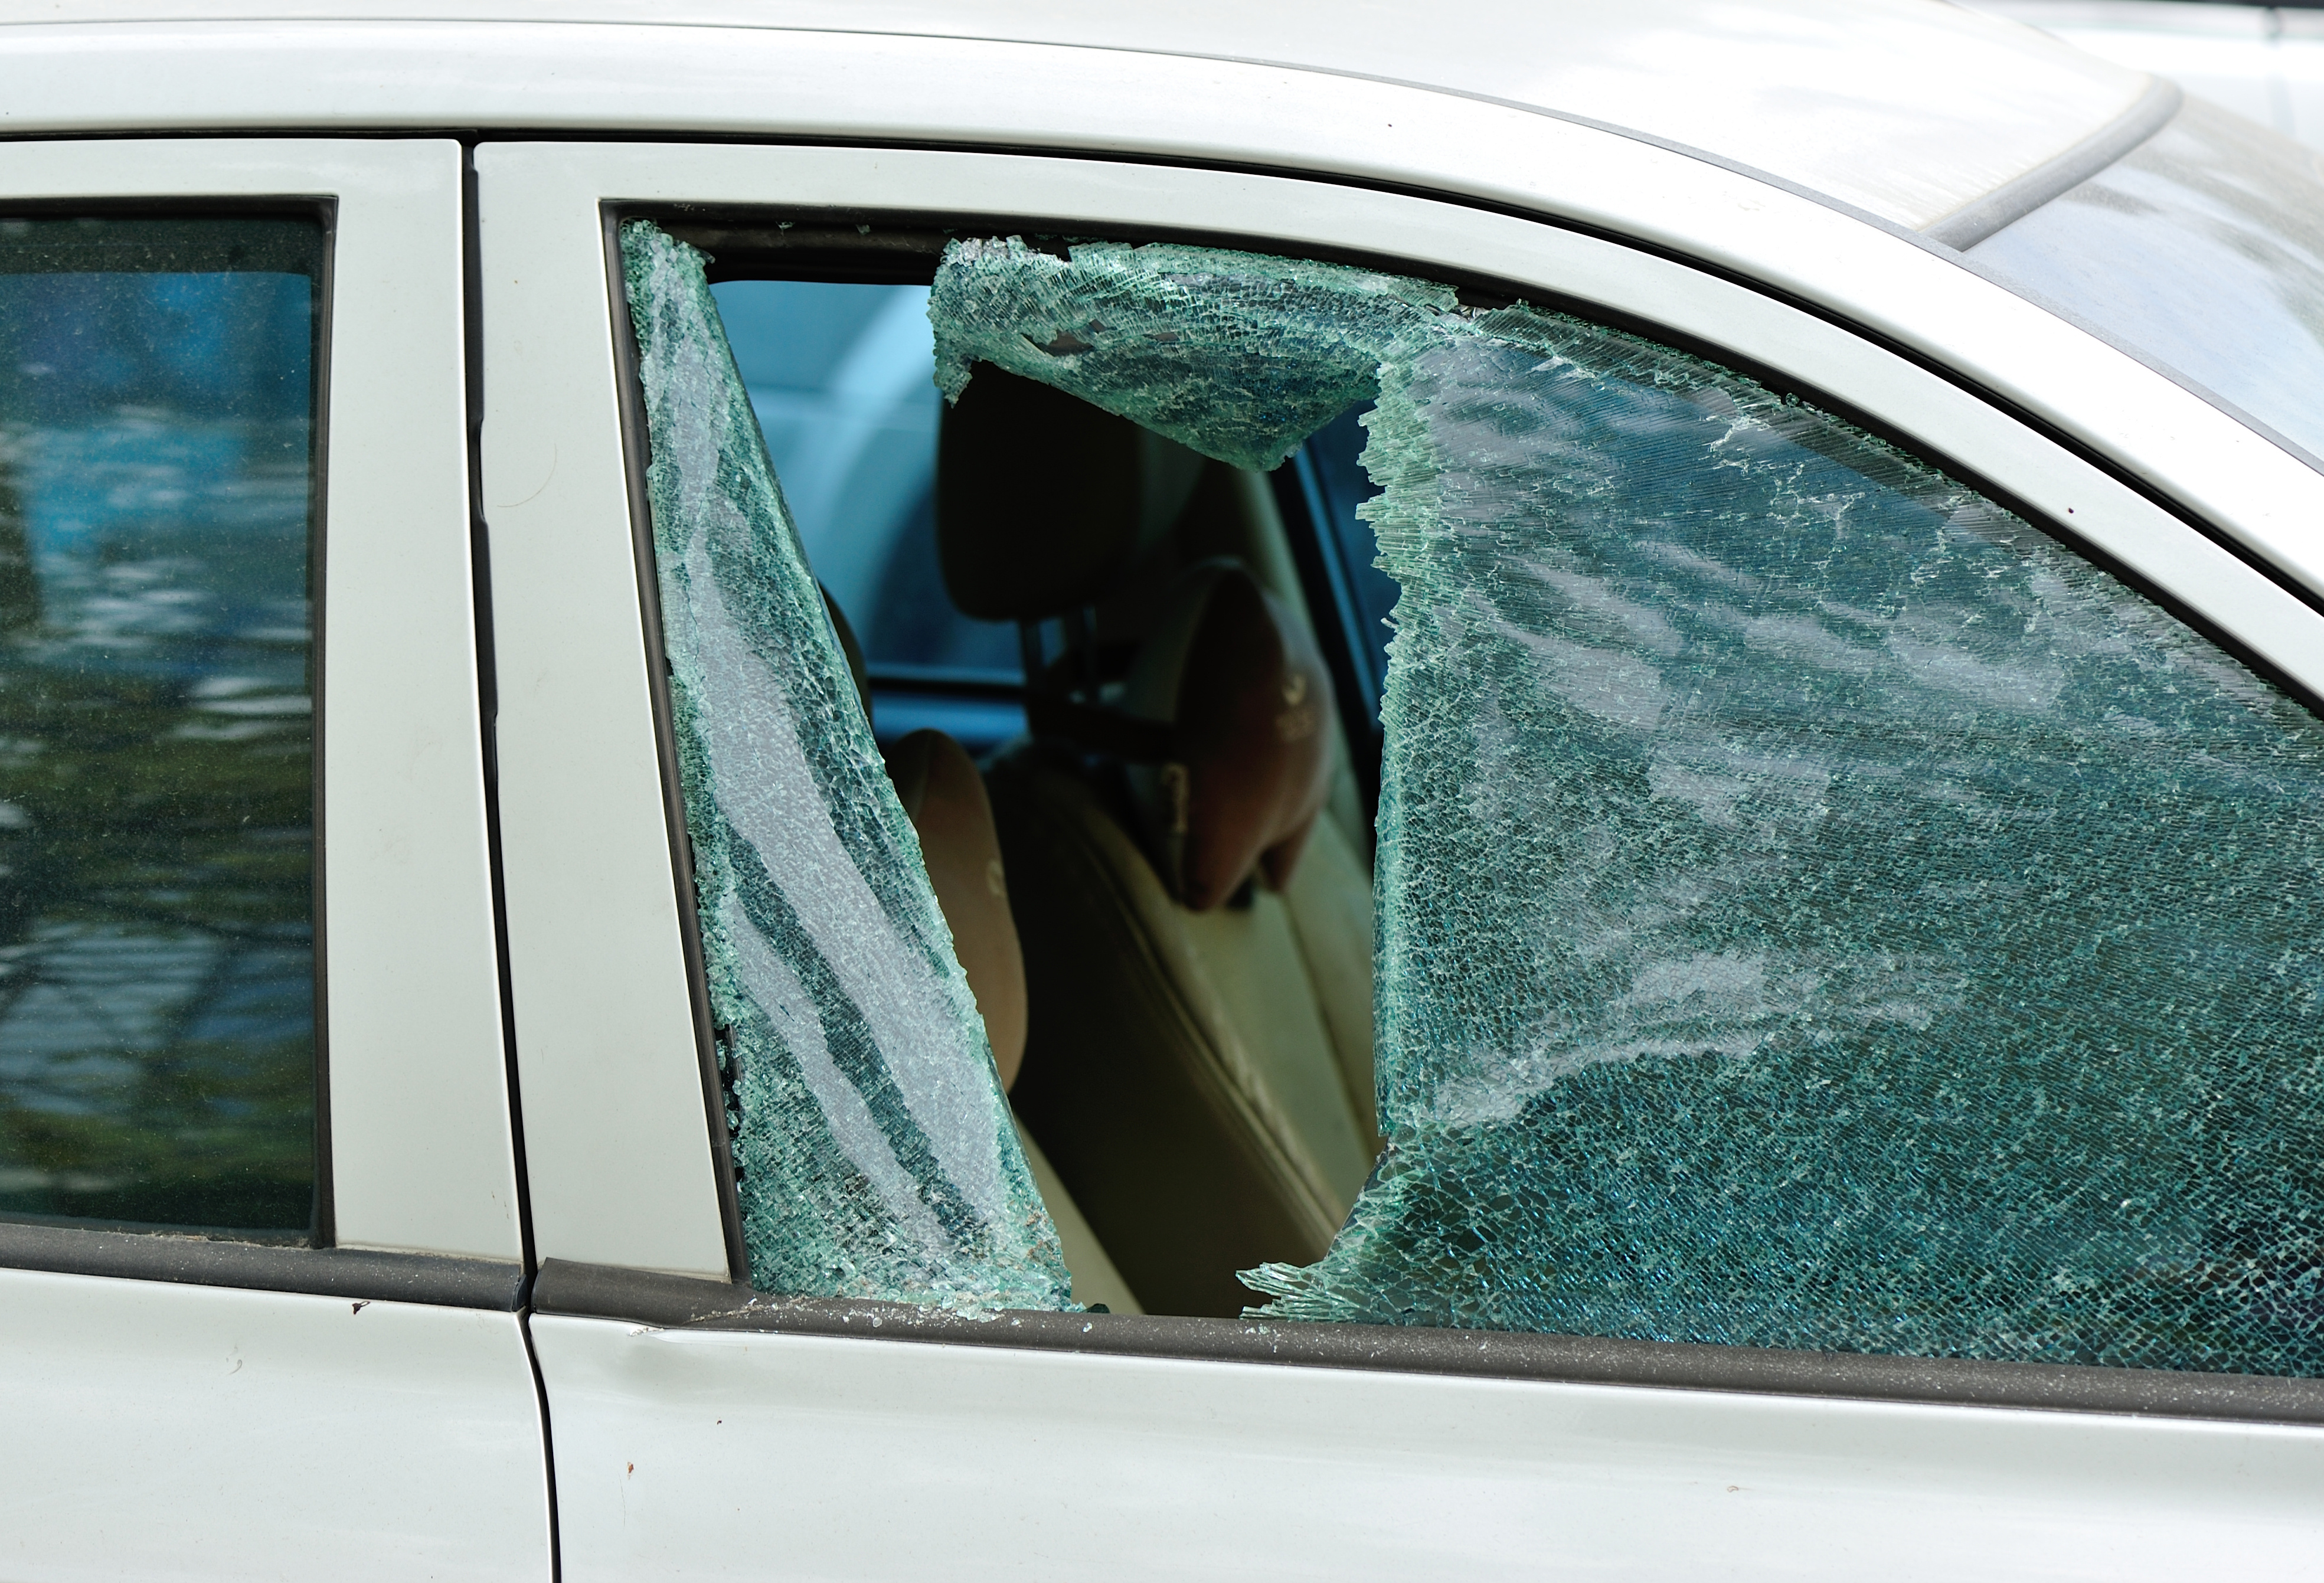 Auto Gl Replacement Is Not The Only Solution To A Damaged Windshield And Smaller Flaws Can Go